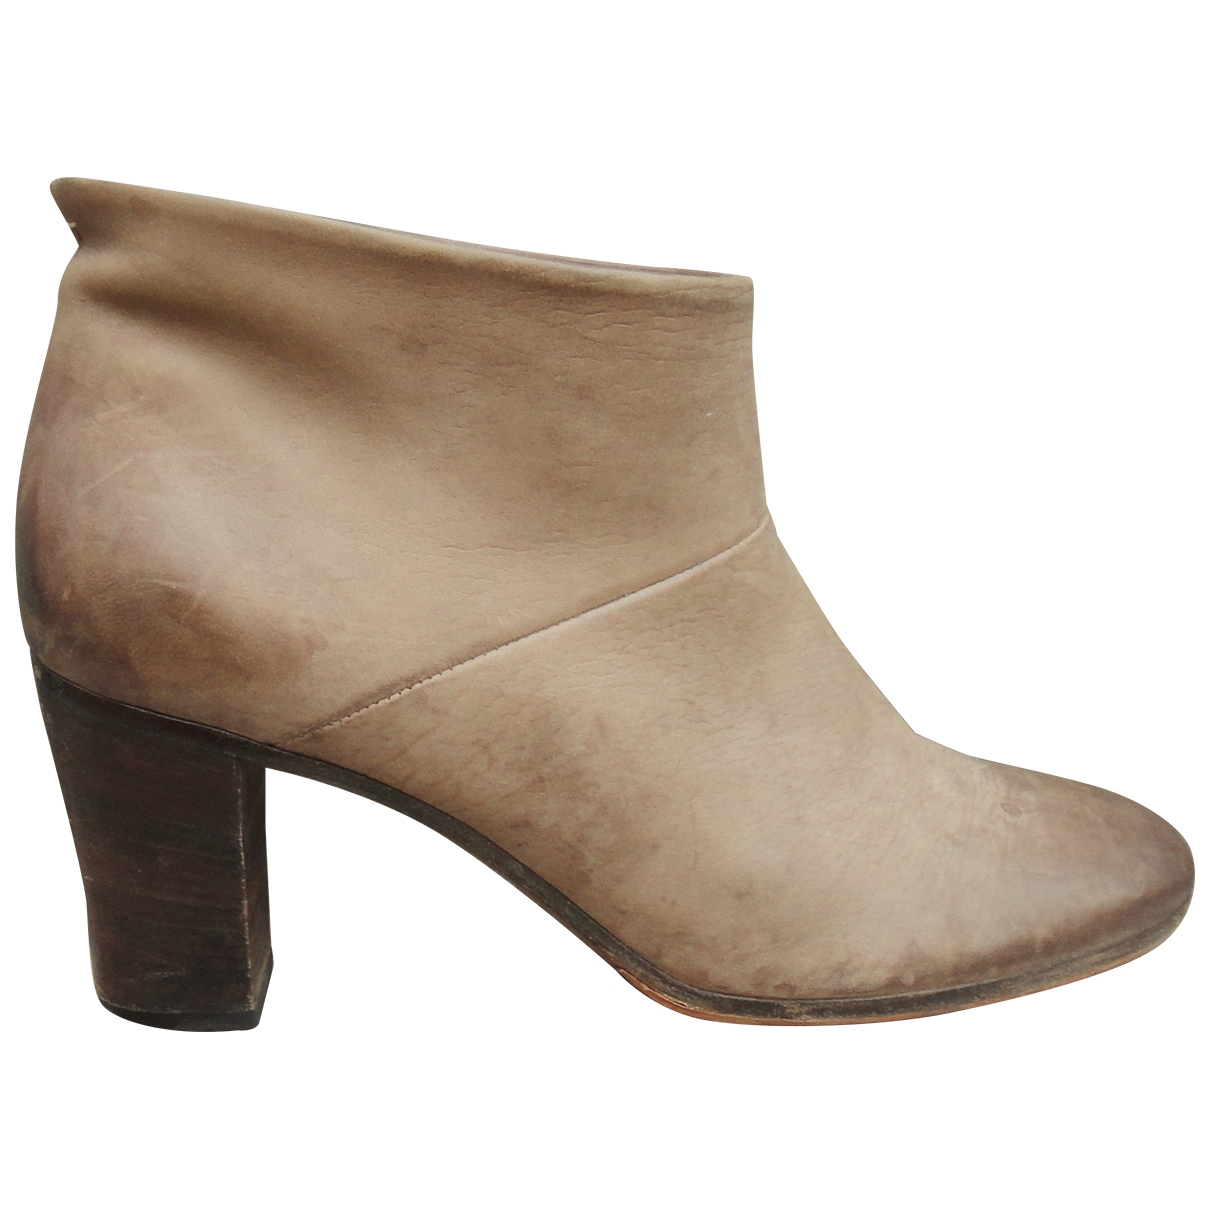 Maison Martin Margiela \N Beige Leather Ankle boots for Women 38 EU